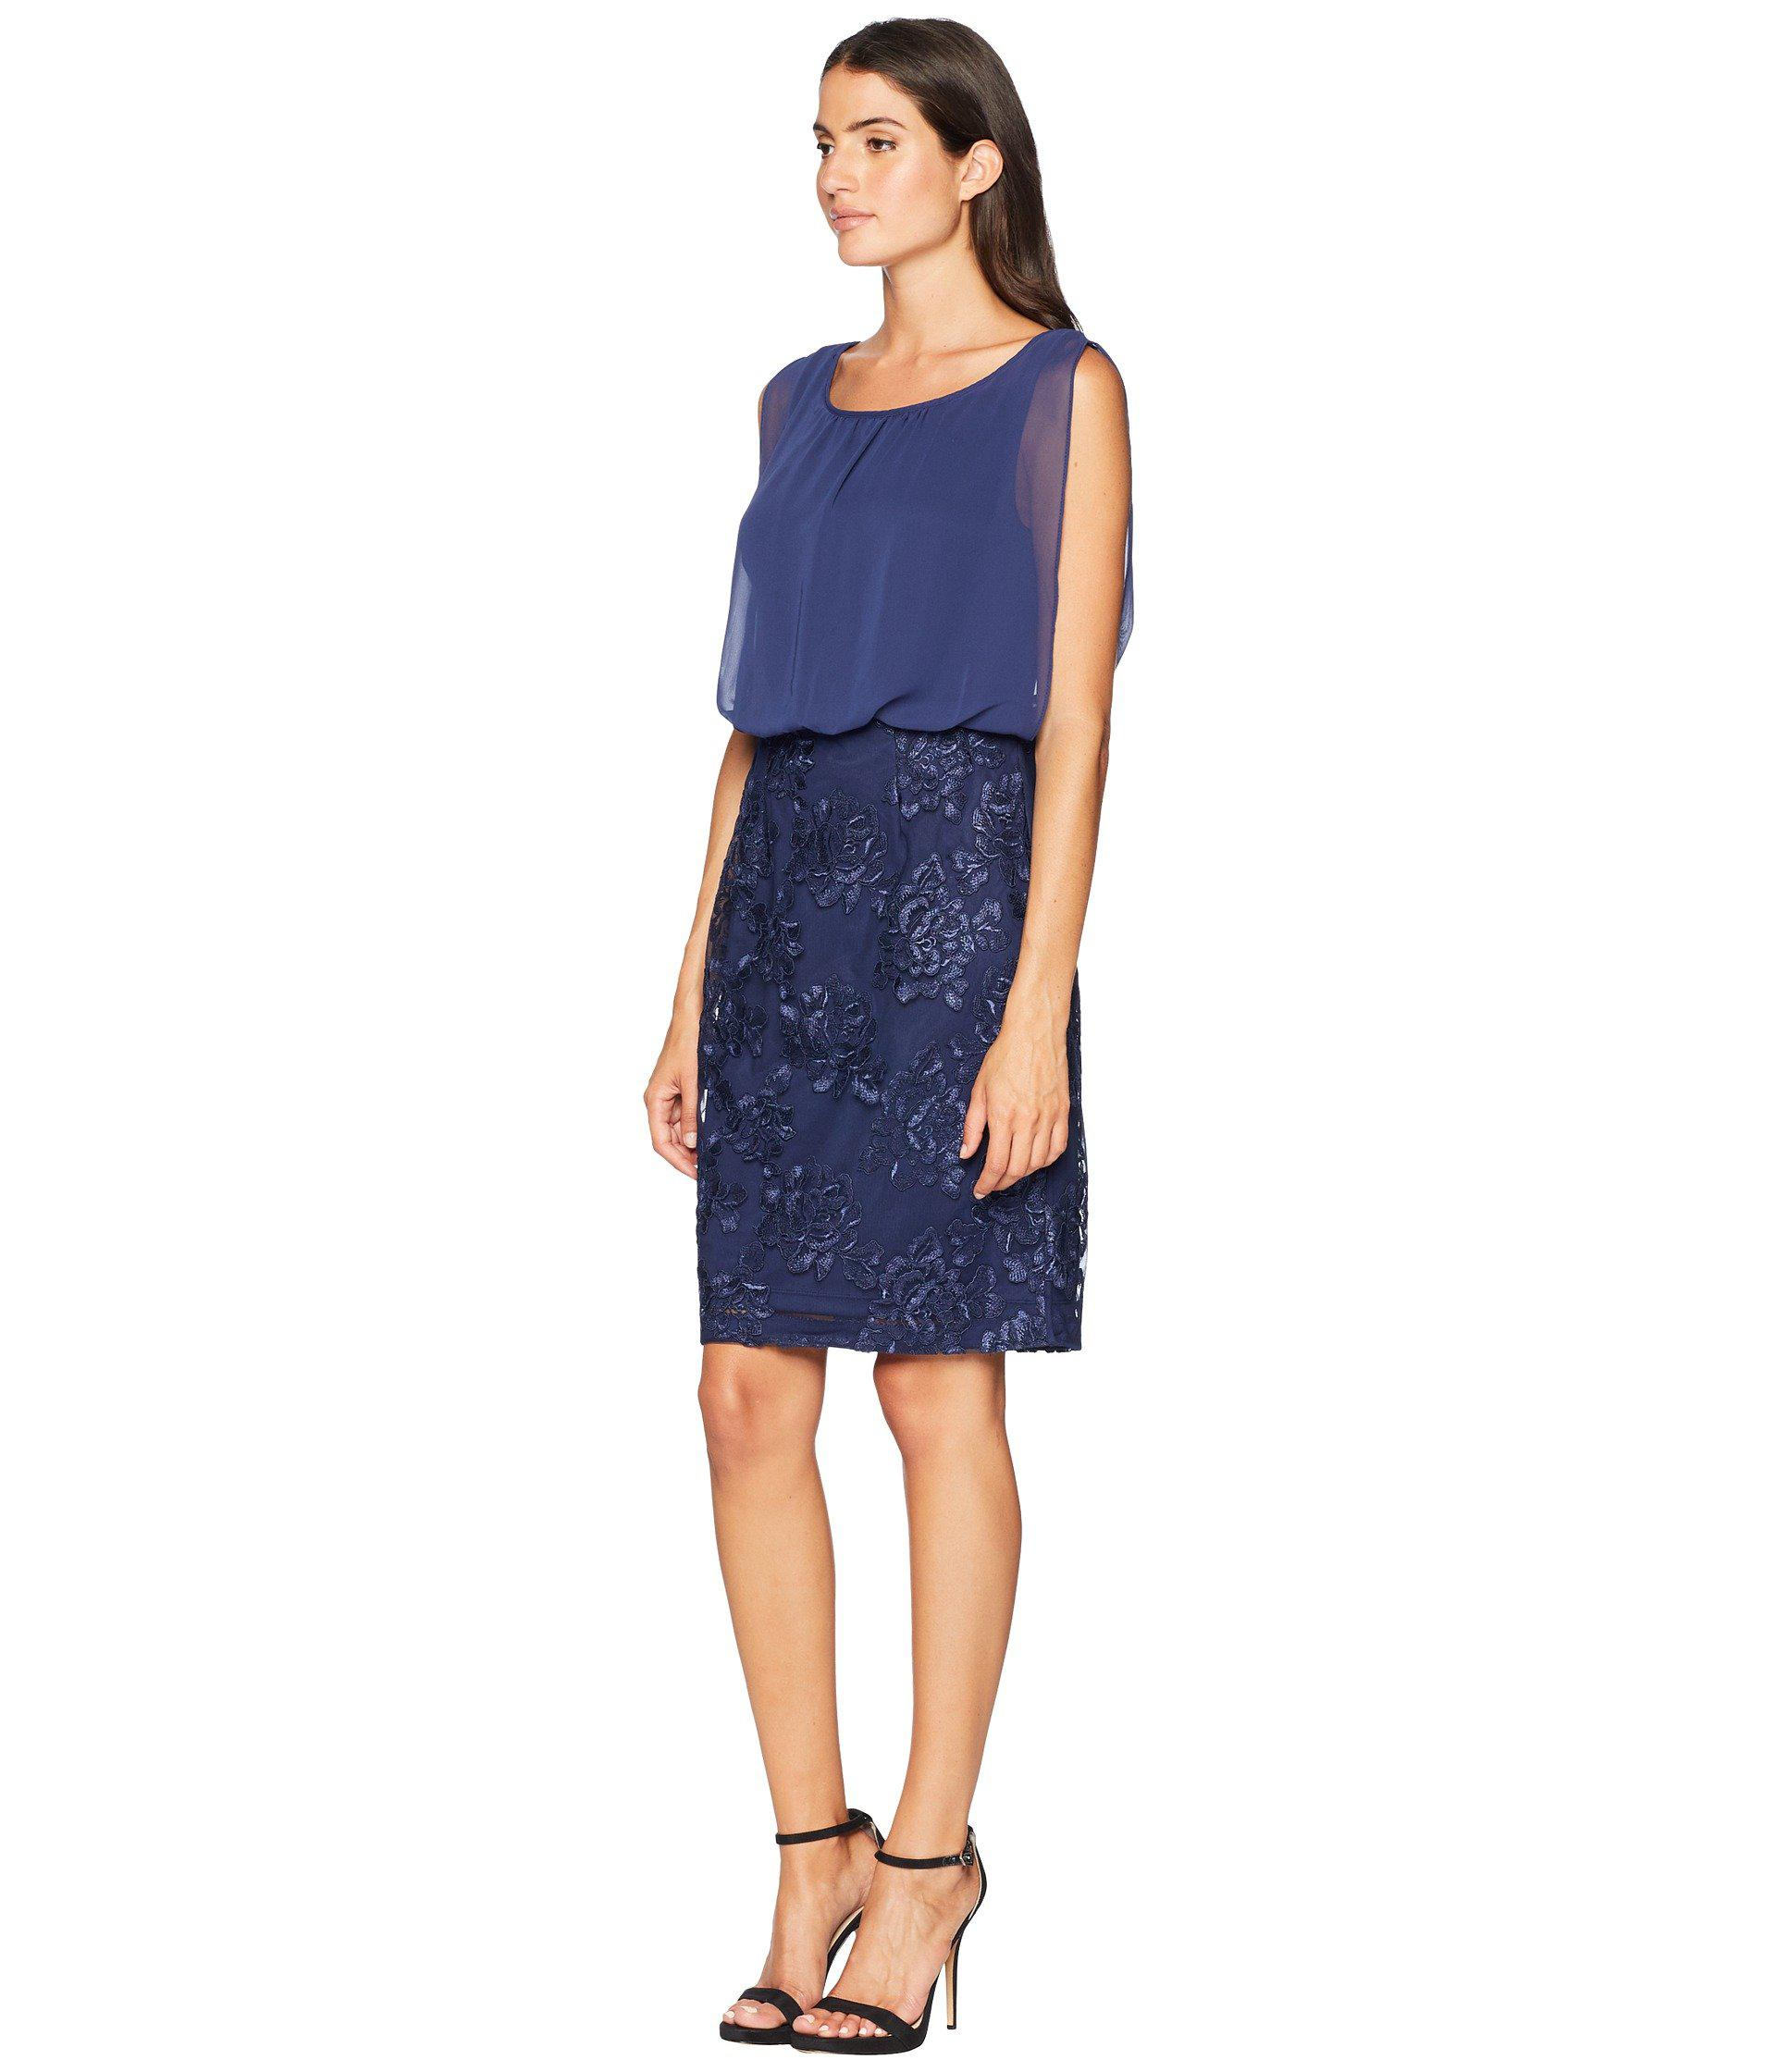 888f4f2807ca2f Lyst - Calvin Klein Embroidered Bottom Twofer Dress Cd8bl7kt in Blue - Save  36%